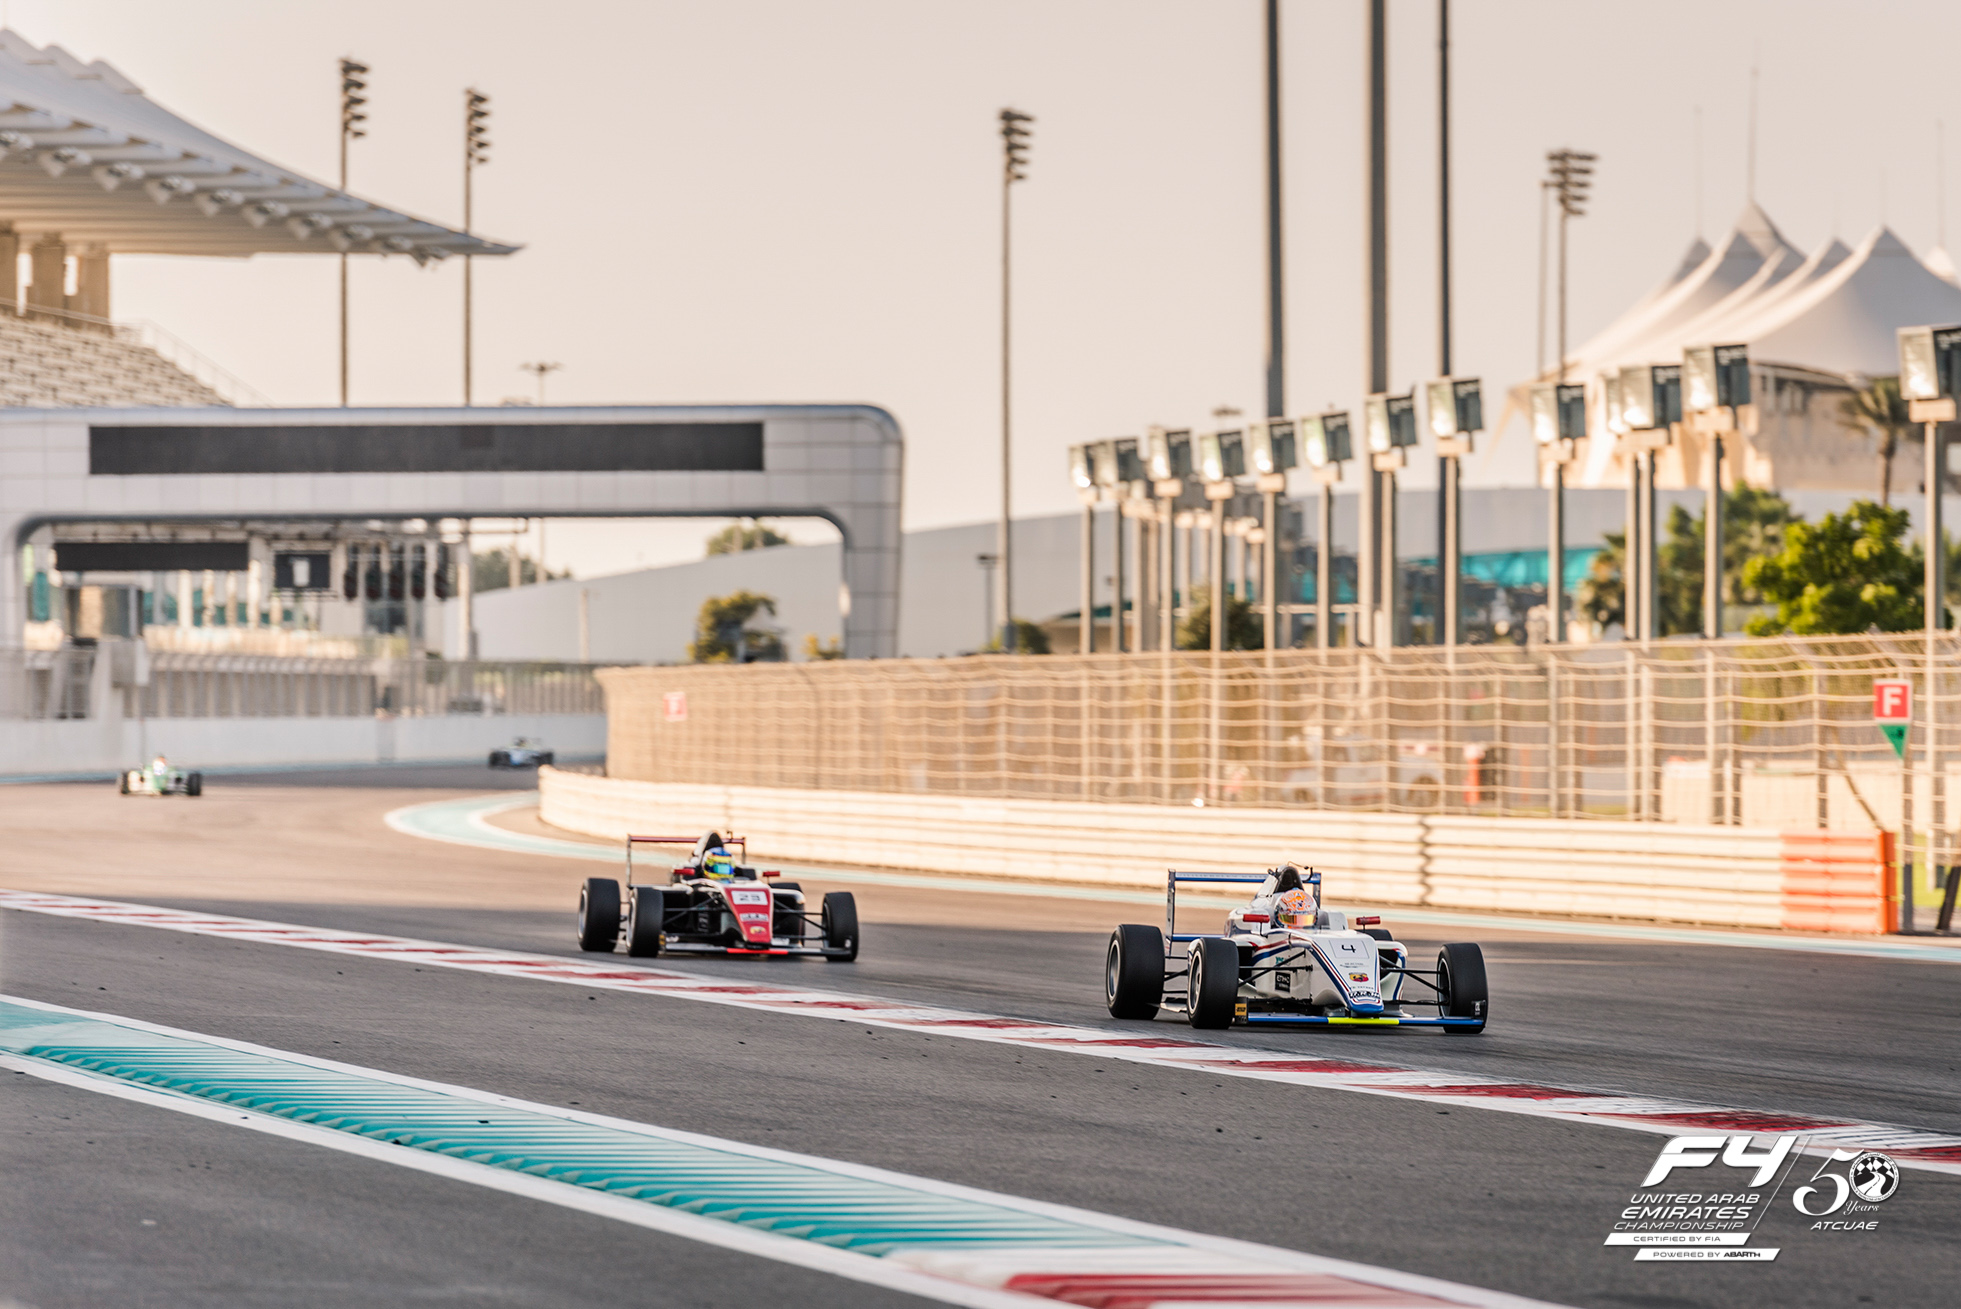 2016 12 18   F4 Second Roud   Abu Dhabi 19 Of 39